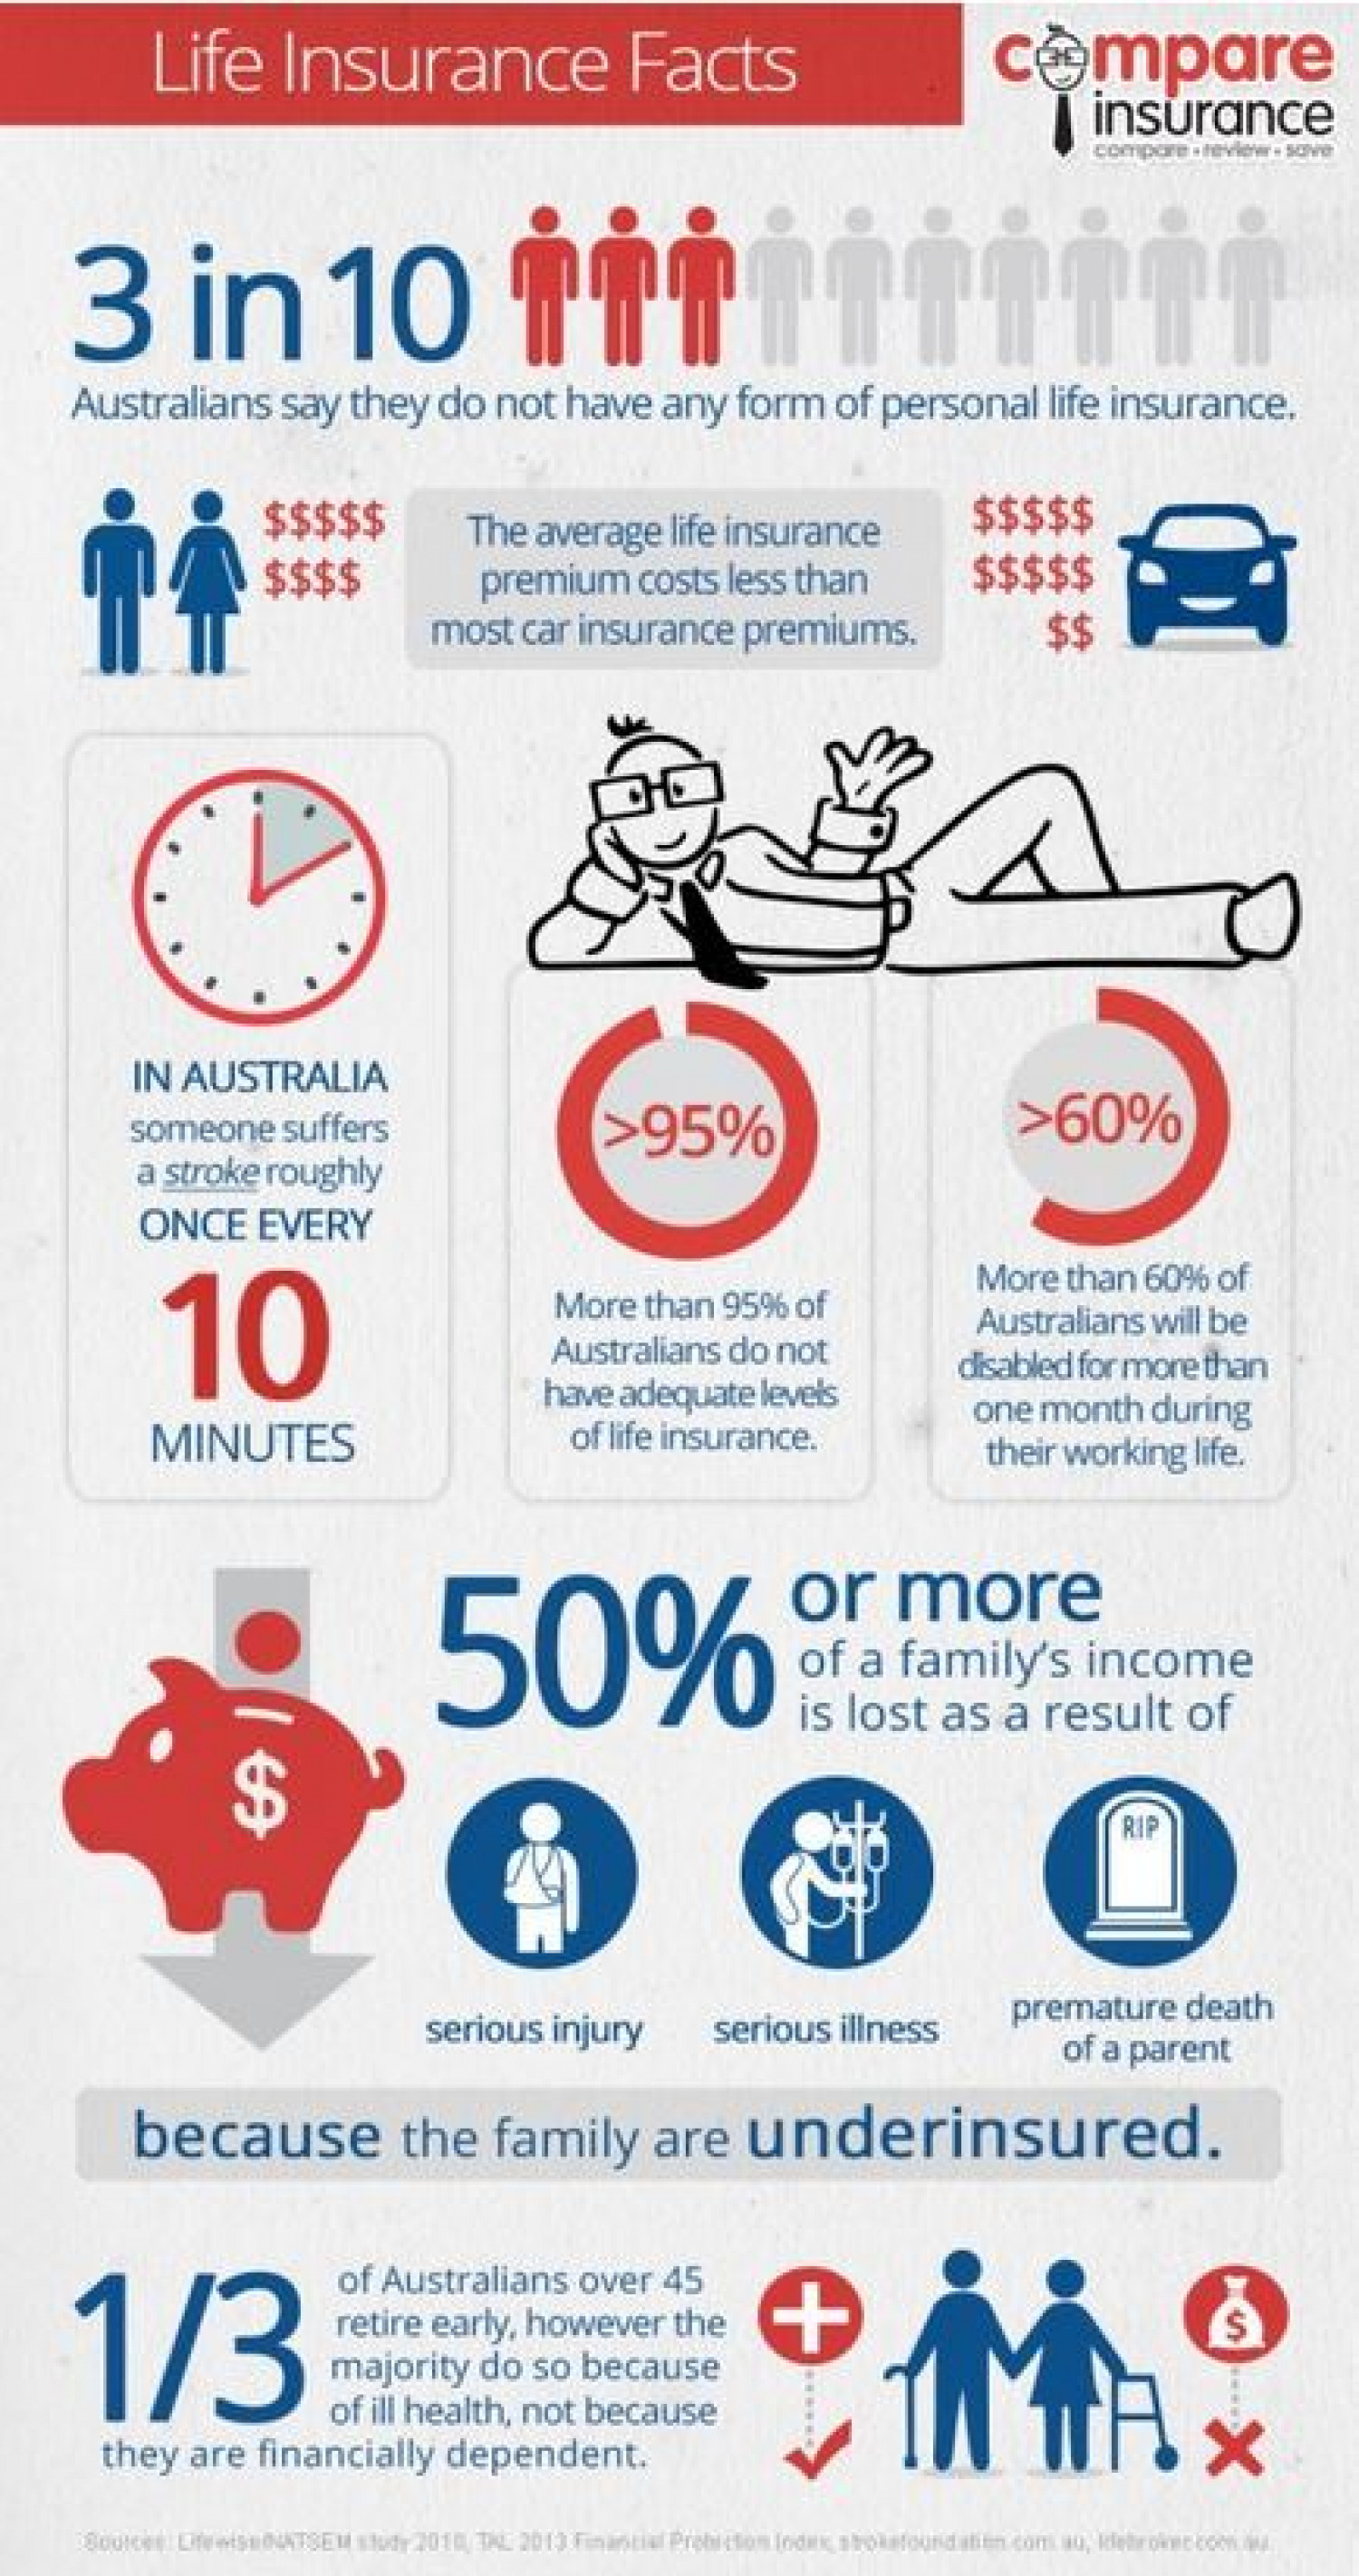 Life Insurance Facts Infographic